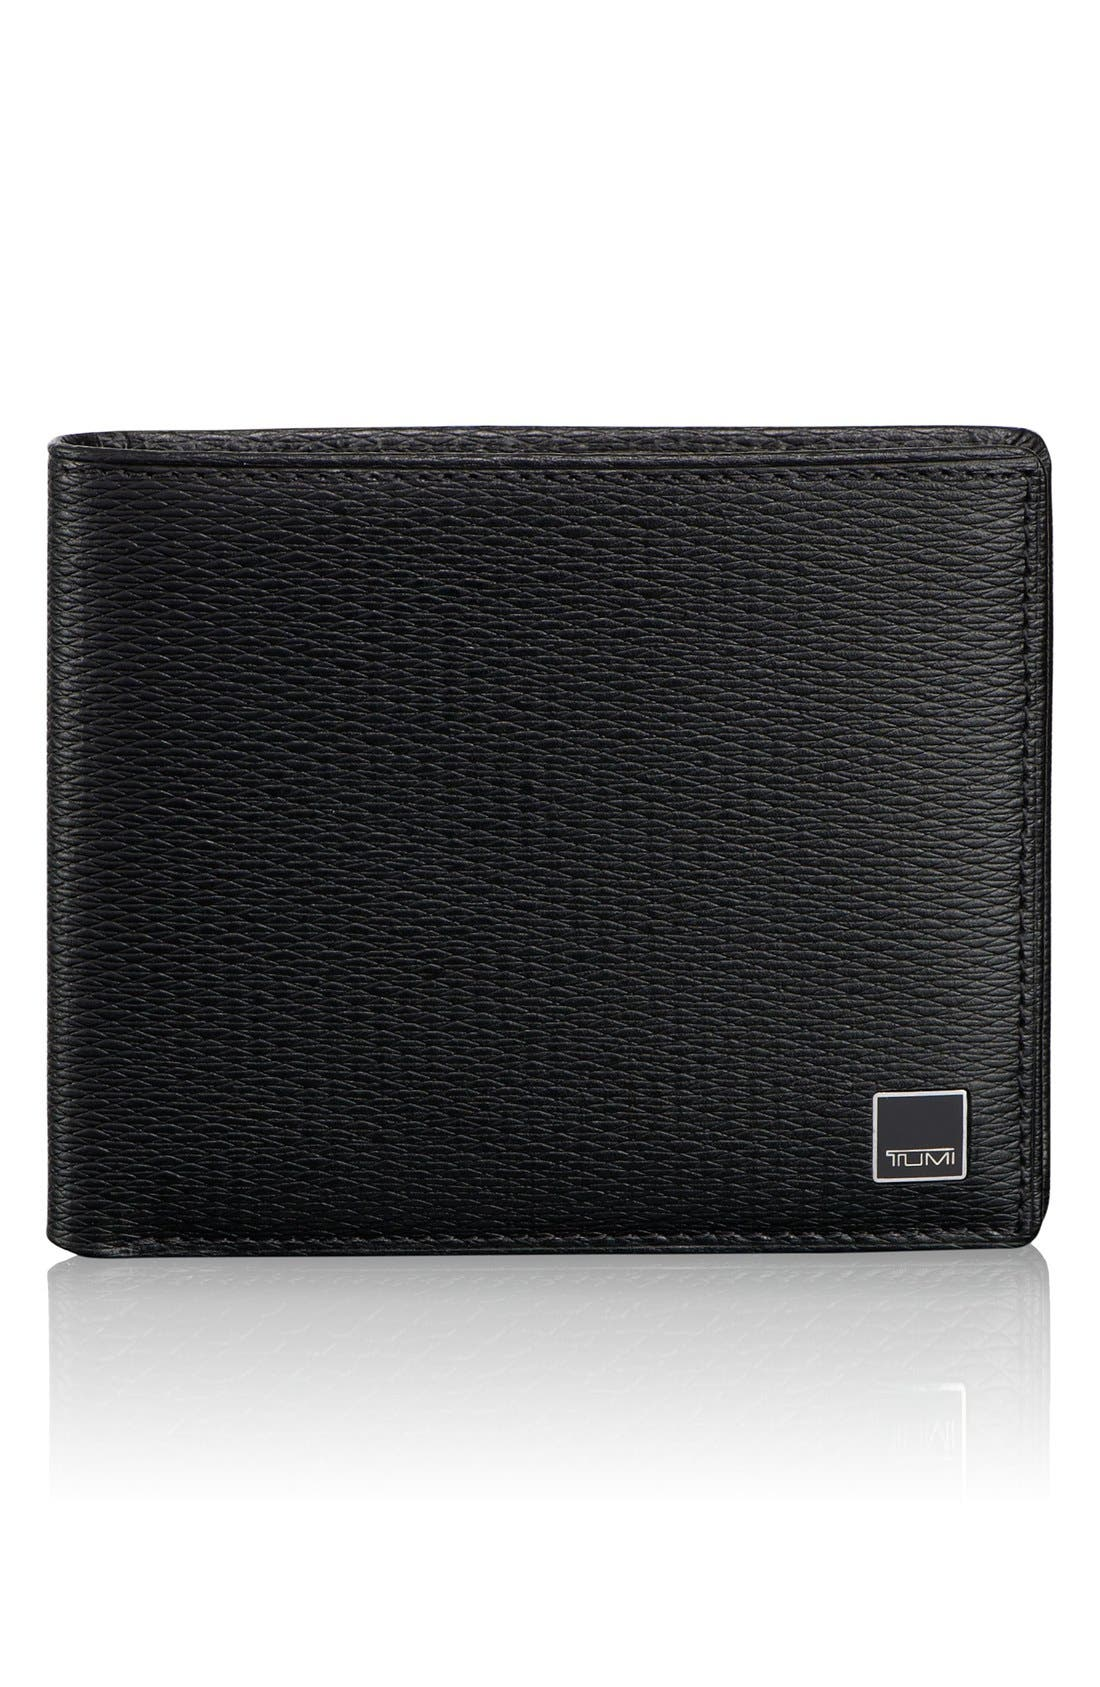 Main Image - Tumi 'Monaco - Global' Wallet with Coin Pocket